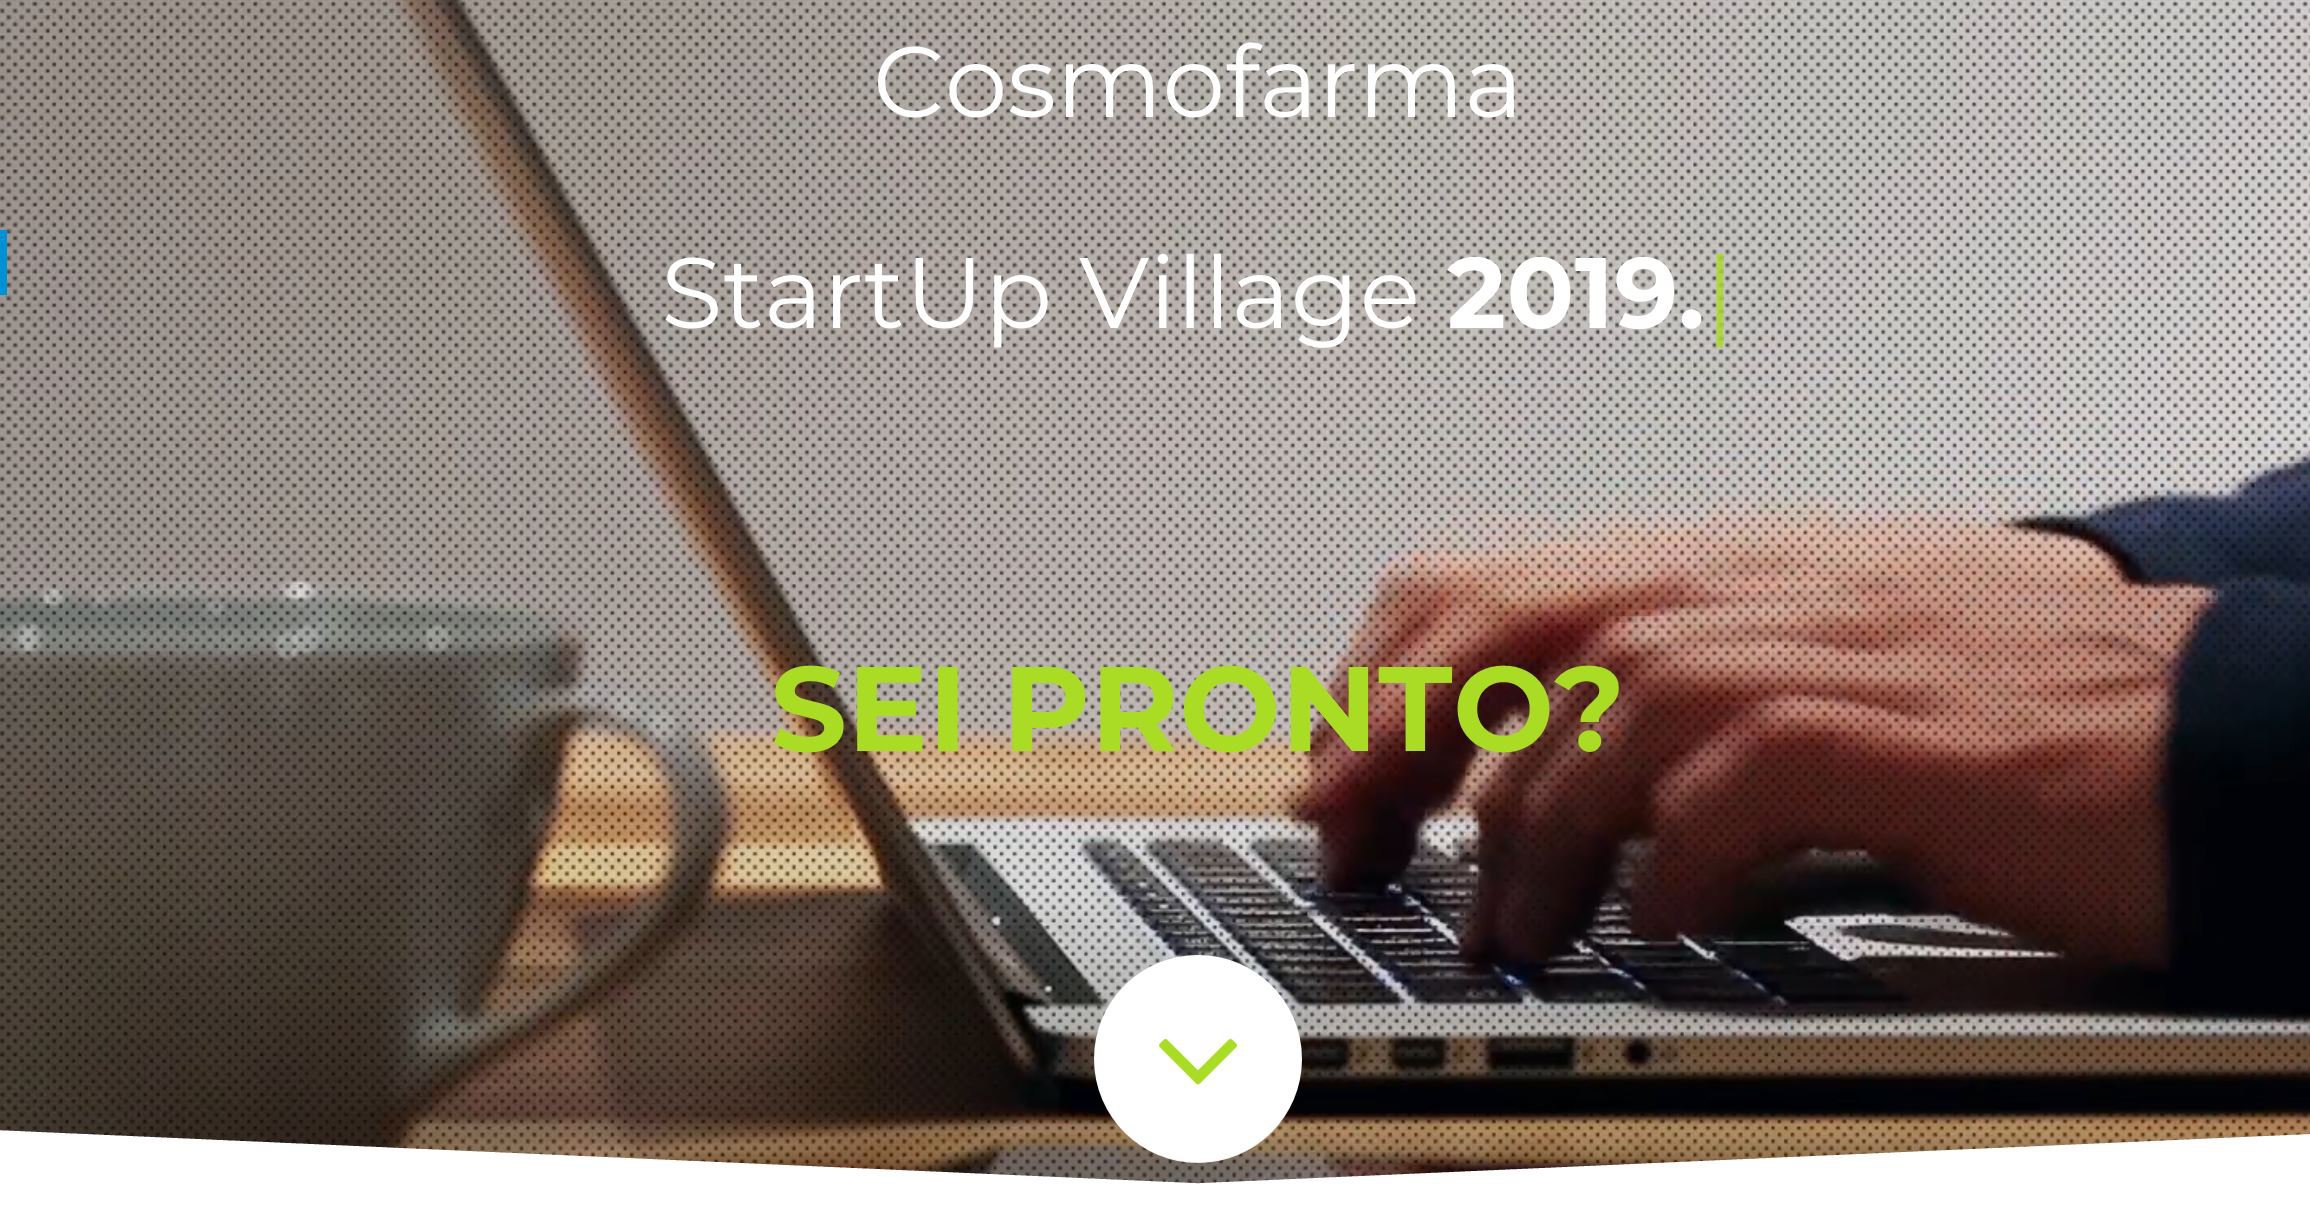 Marketing Farmaceutico Libro Al Via La Call For Ideas Per Il 5 Cosmofarma Startup Village 2019